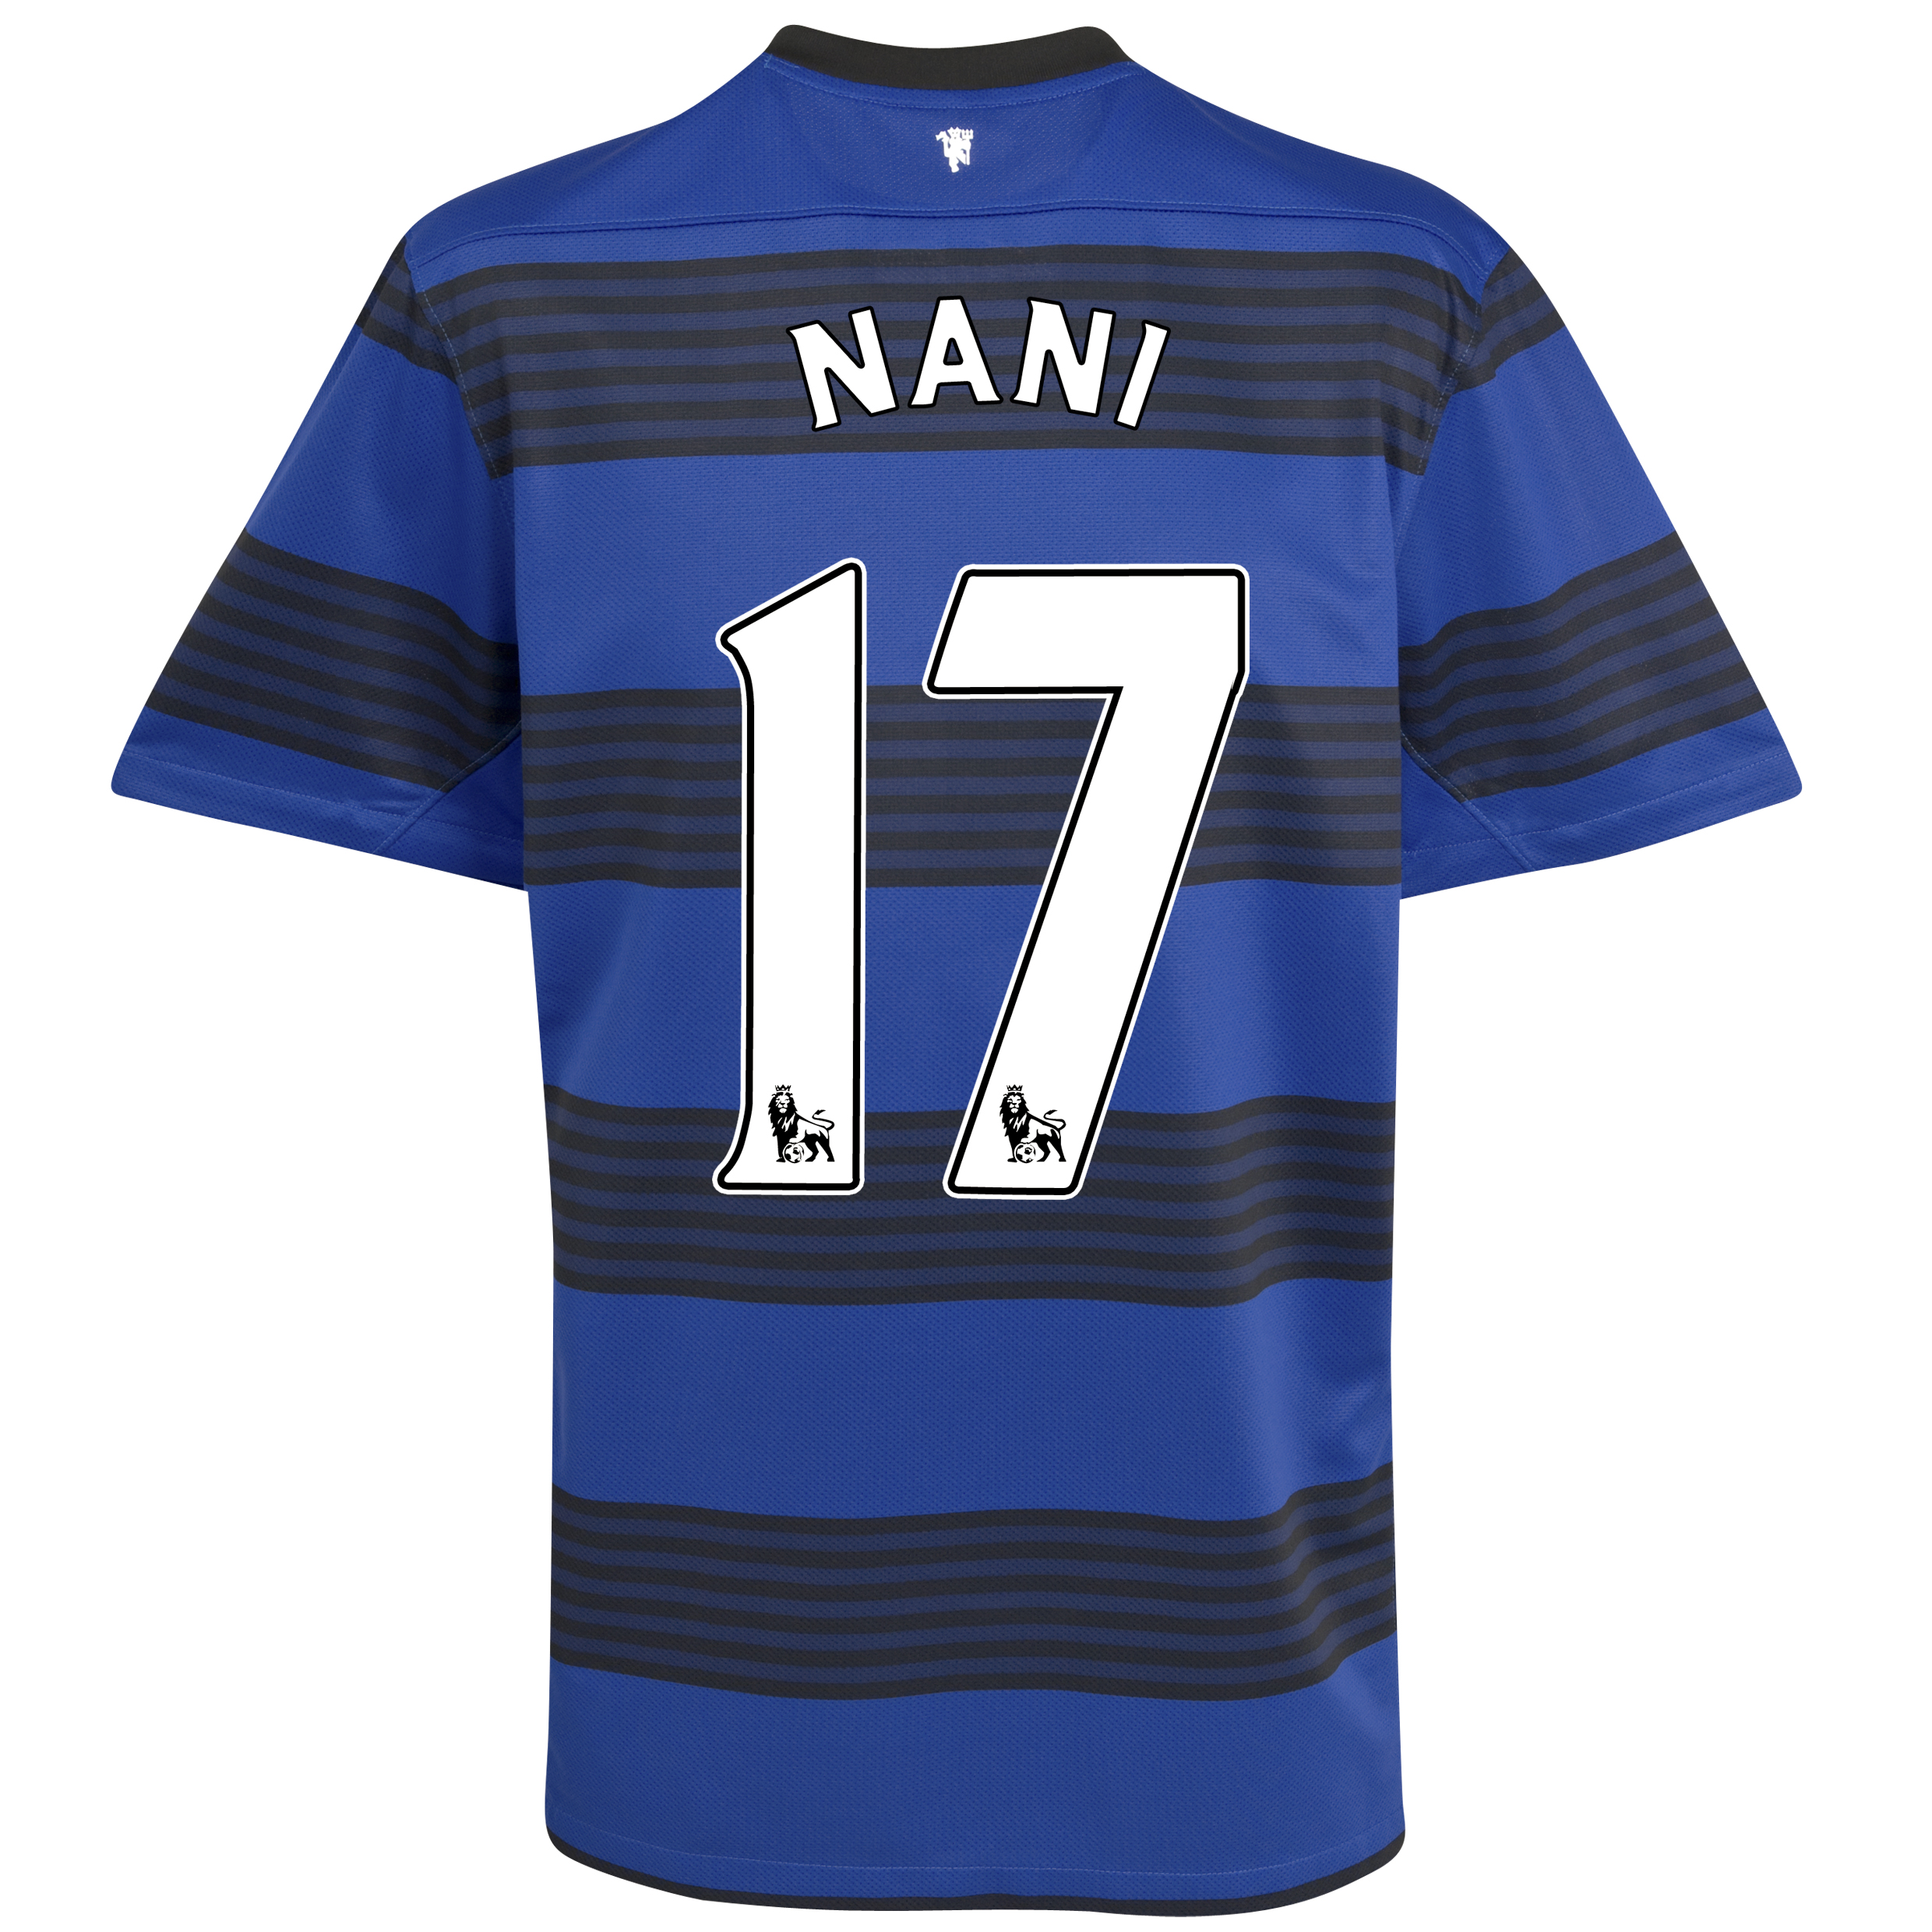 Manchester United Away Shirt 2011/12 with Nani 17 printing